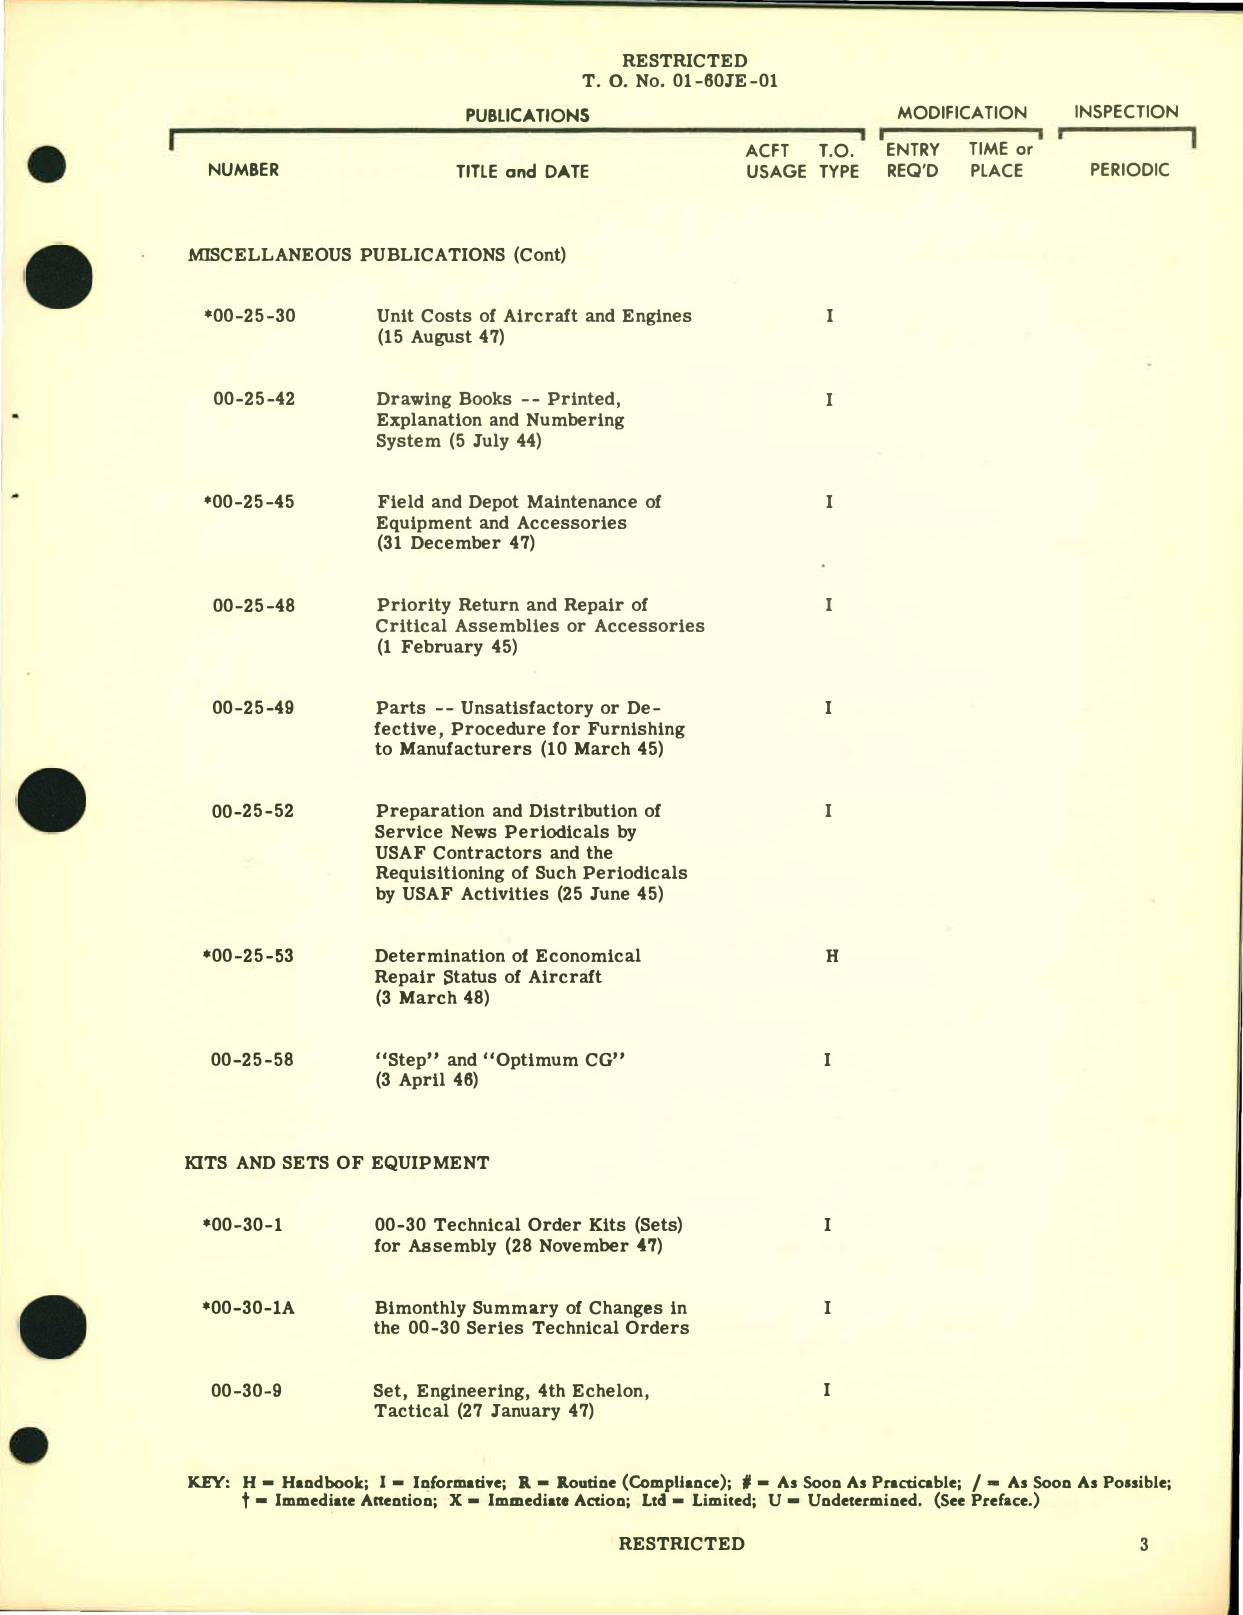 Sample page  7 from AirCorps Library document: F-51D Aircraft and Equipment - List of Applicable Publications